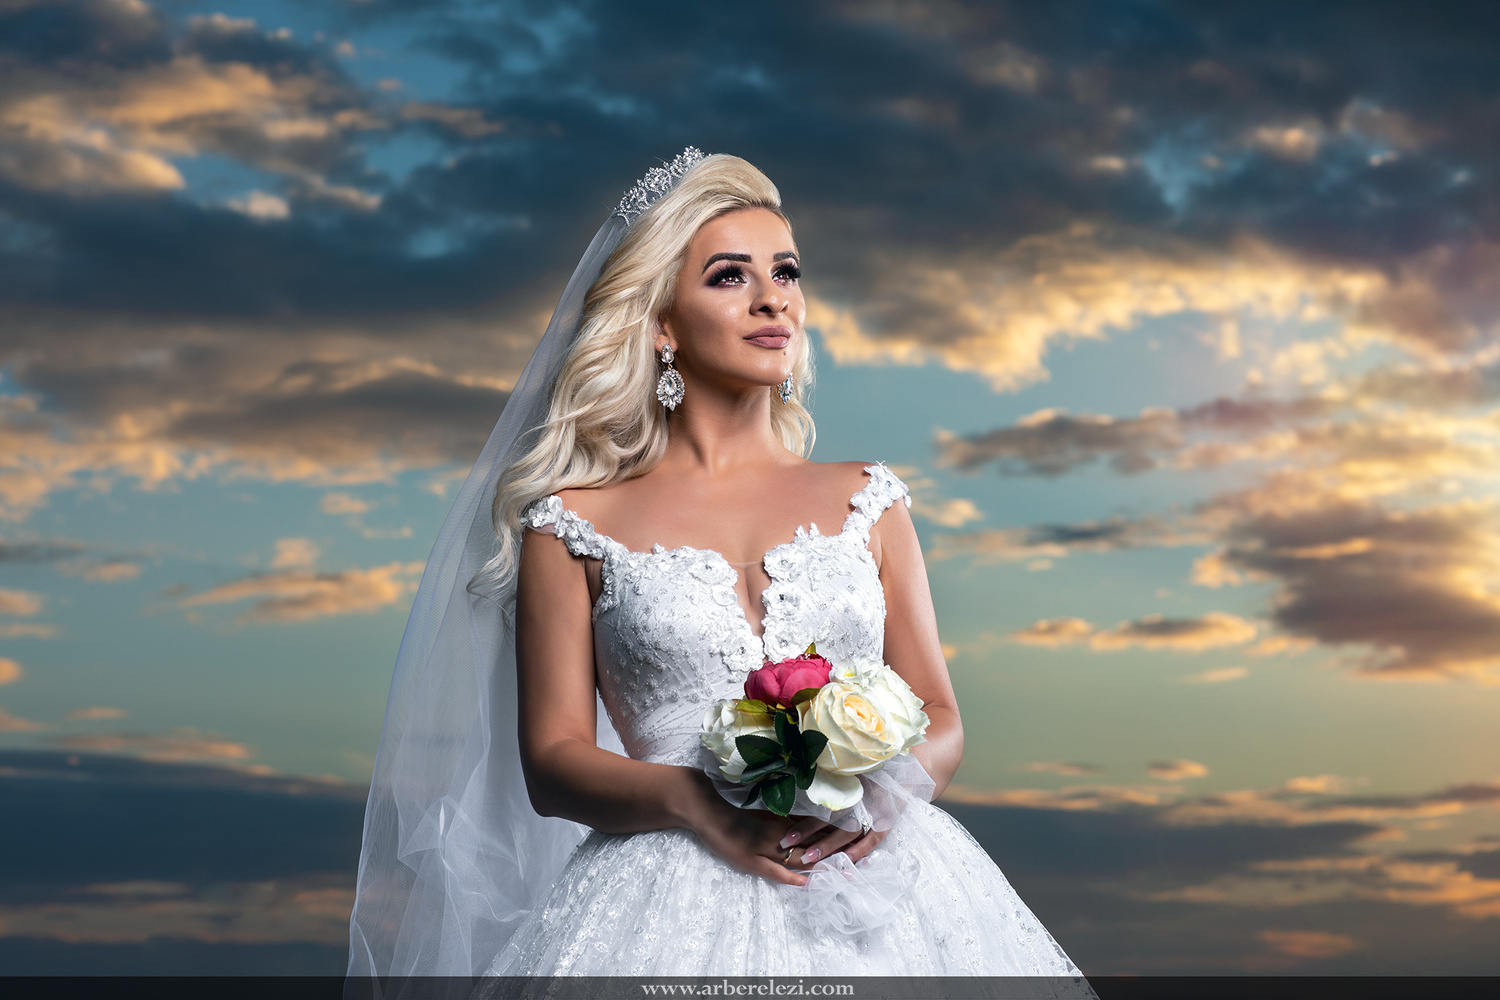 Bridal Photography by Arber Elezi